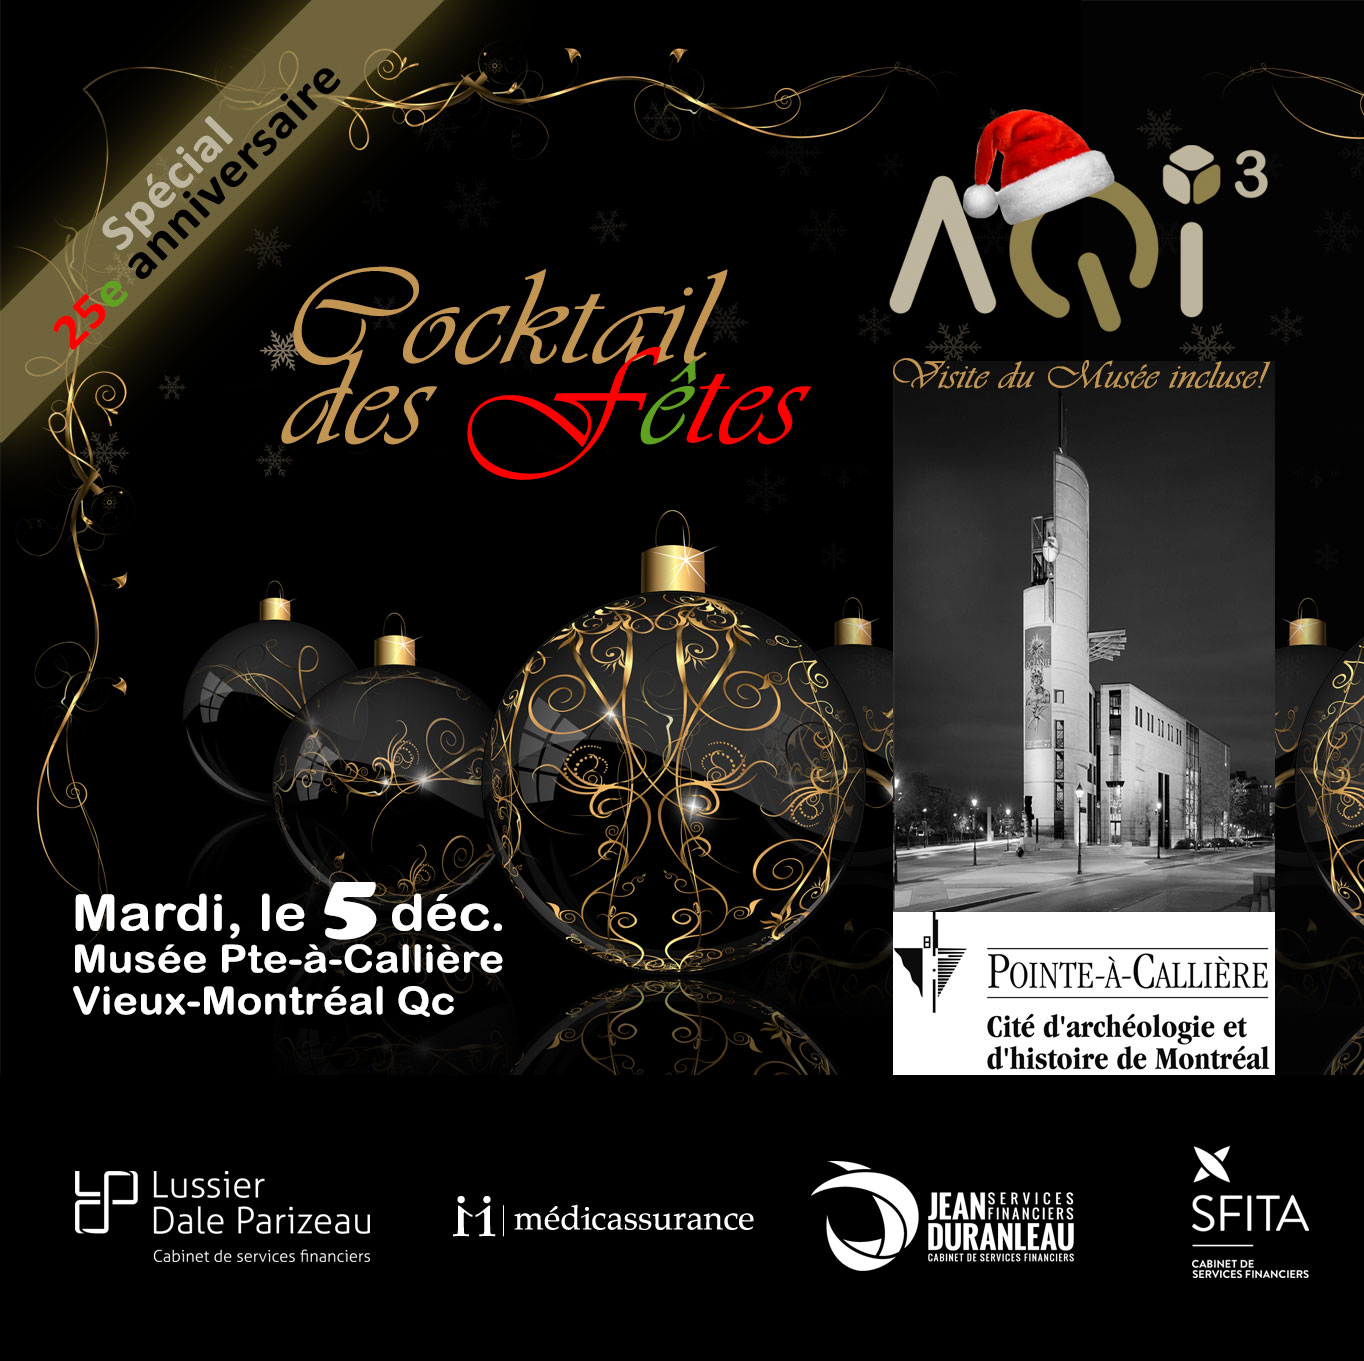 AQIII cocktail 2017